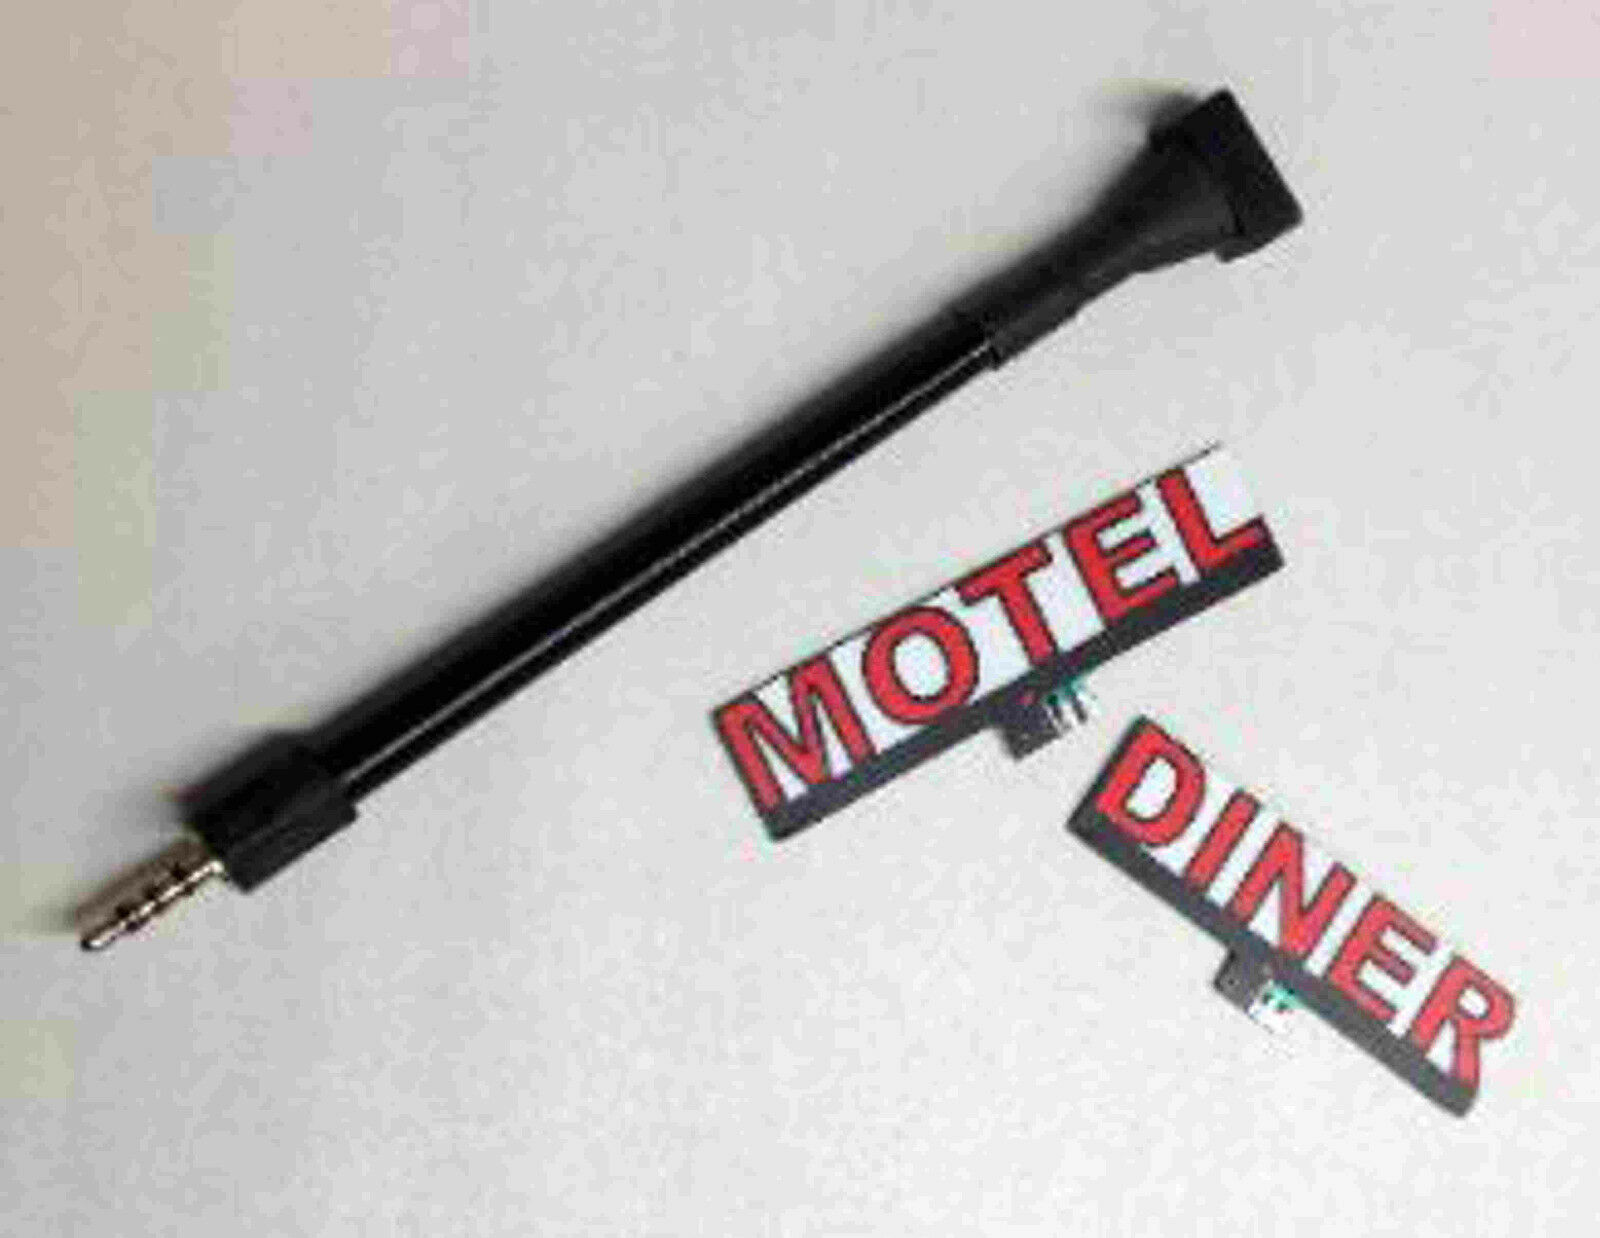 AMOCO GAS TERRIFIC rossoATING ANIMATED SIGN- SIGN- SIGN- MILLER ENGR O HO SCALE-DON'T WAIT   2d8b2d